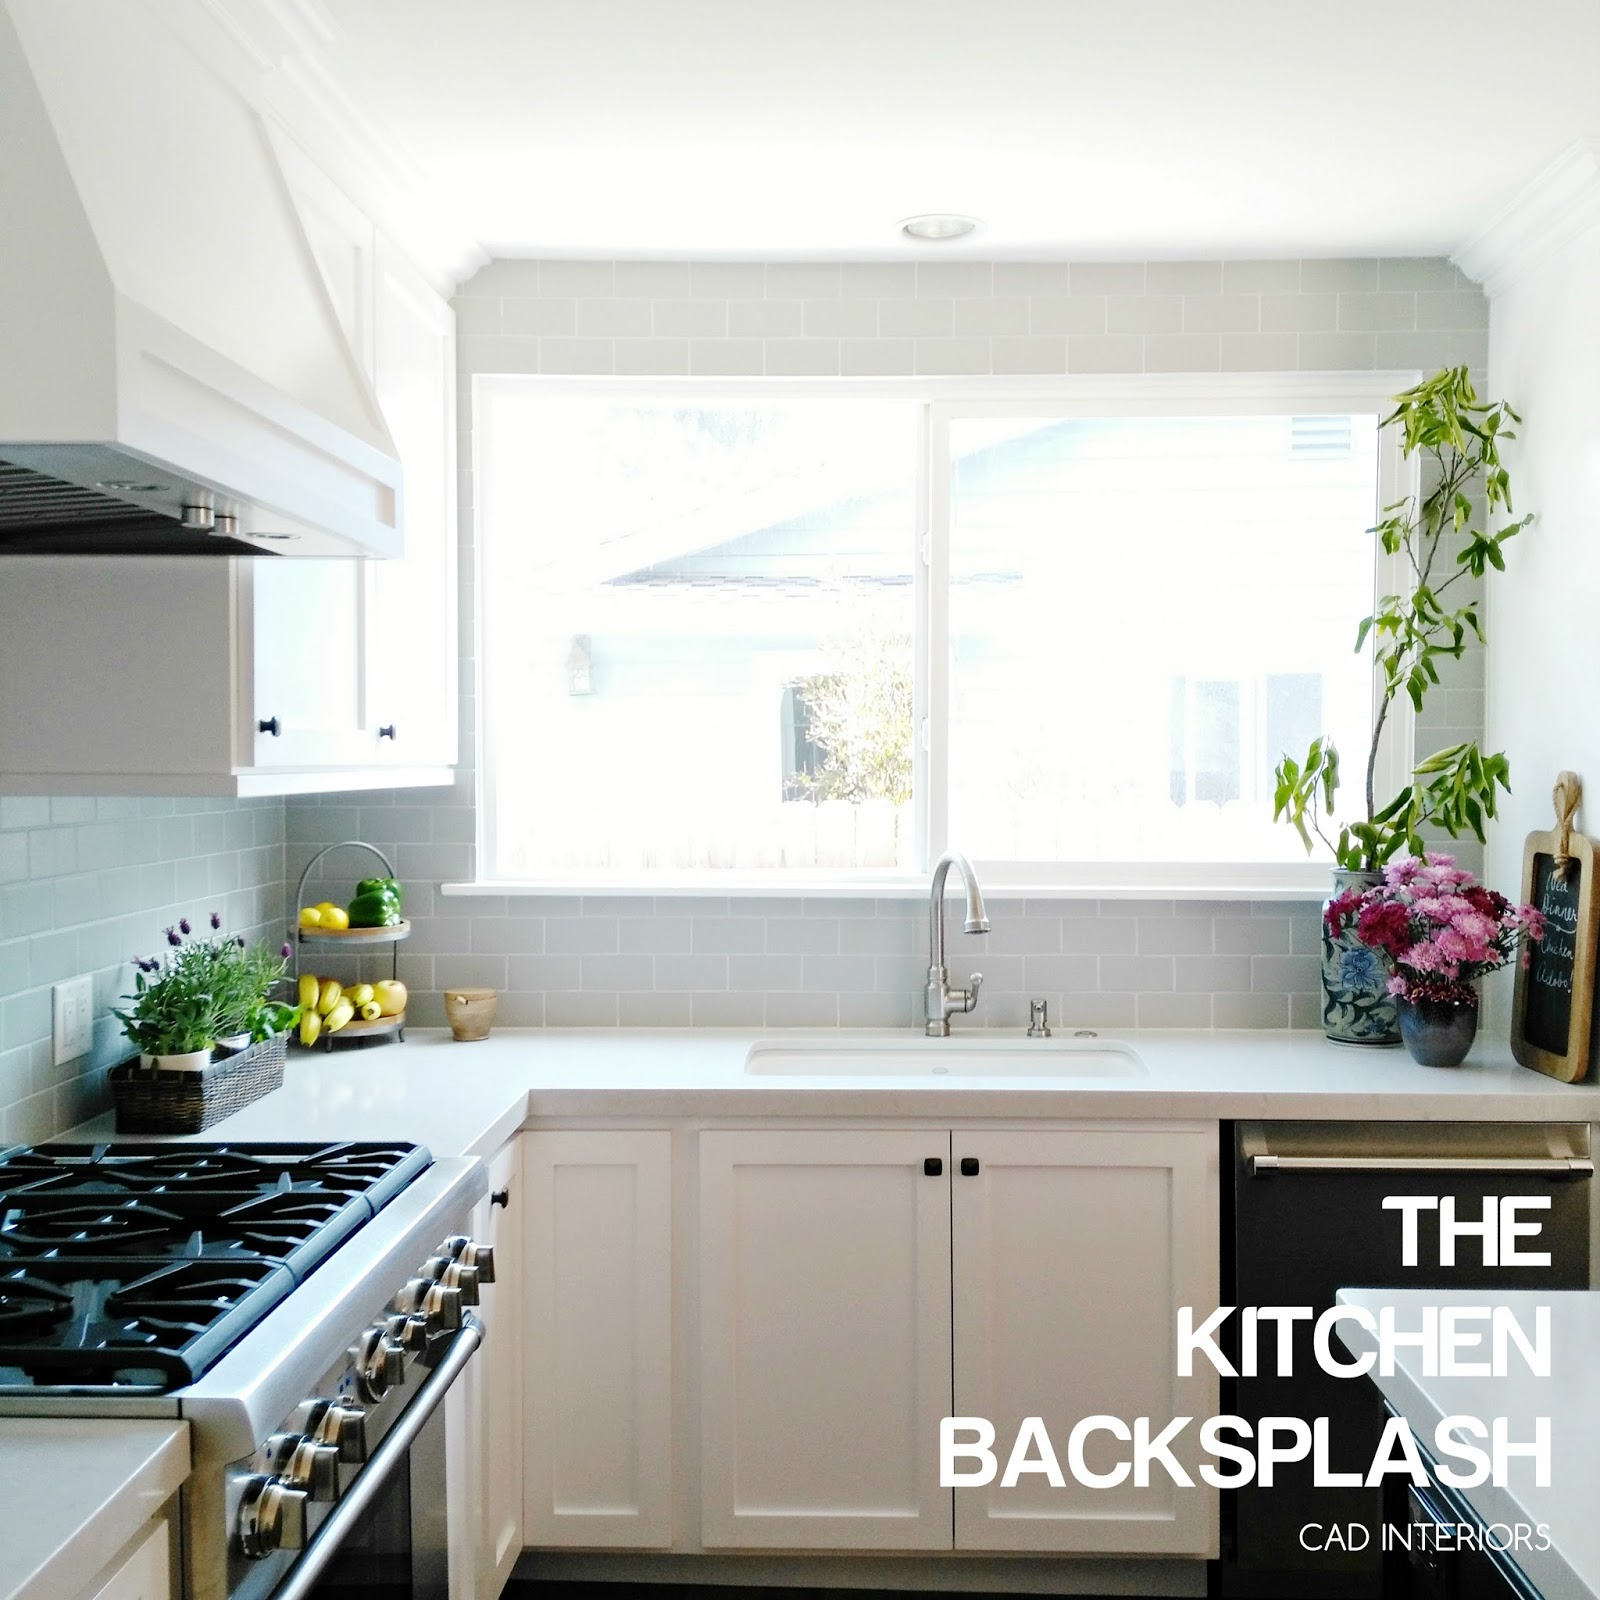 kitchen backsplash installing kitchen backsplash ceramic subway tile backsplash modern classic farmhouse kitchen design